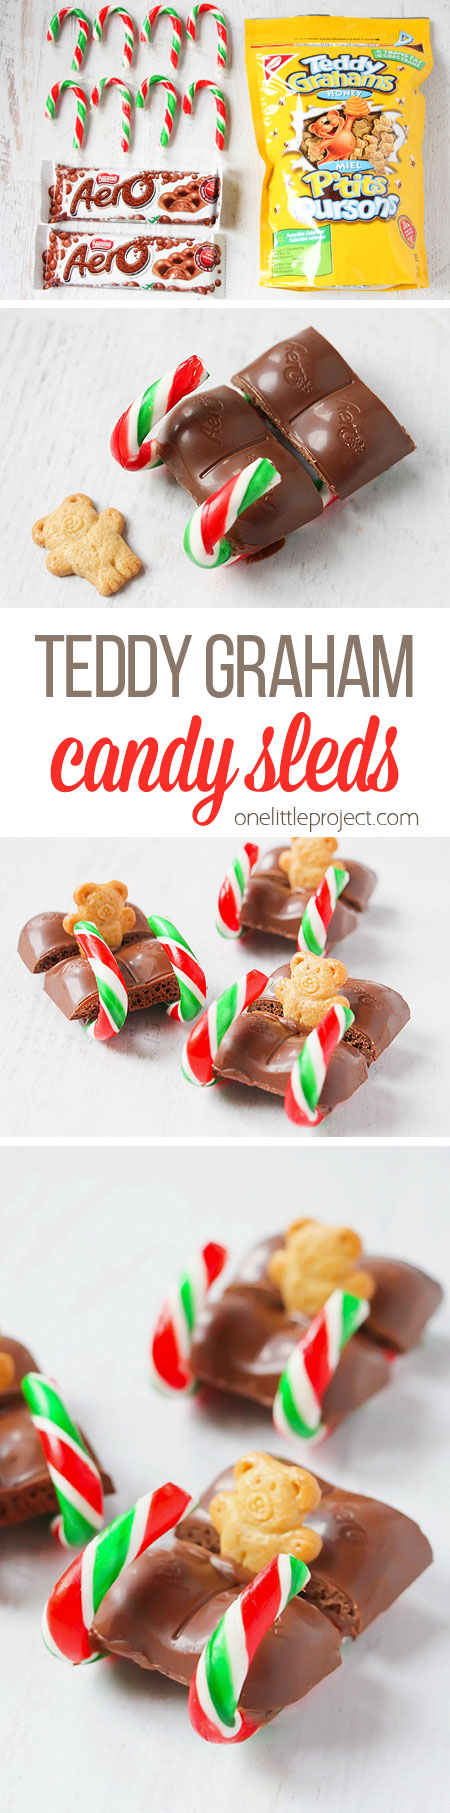 These candy cane teddy graham sleds are such an ADORABLE and simple Christmas treat idea!! They'd be perfect for a Christmas party or lunch box treat! So cute!